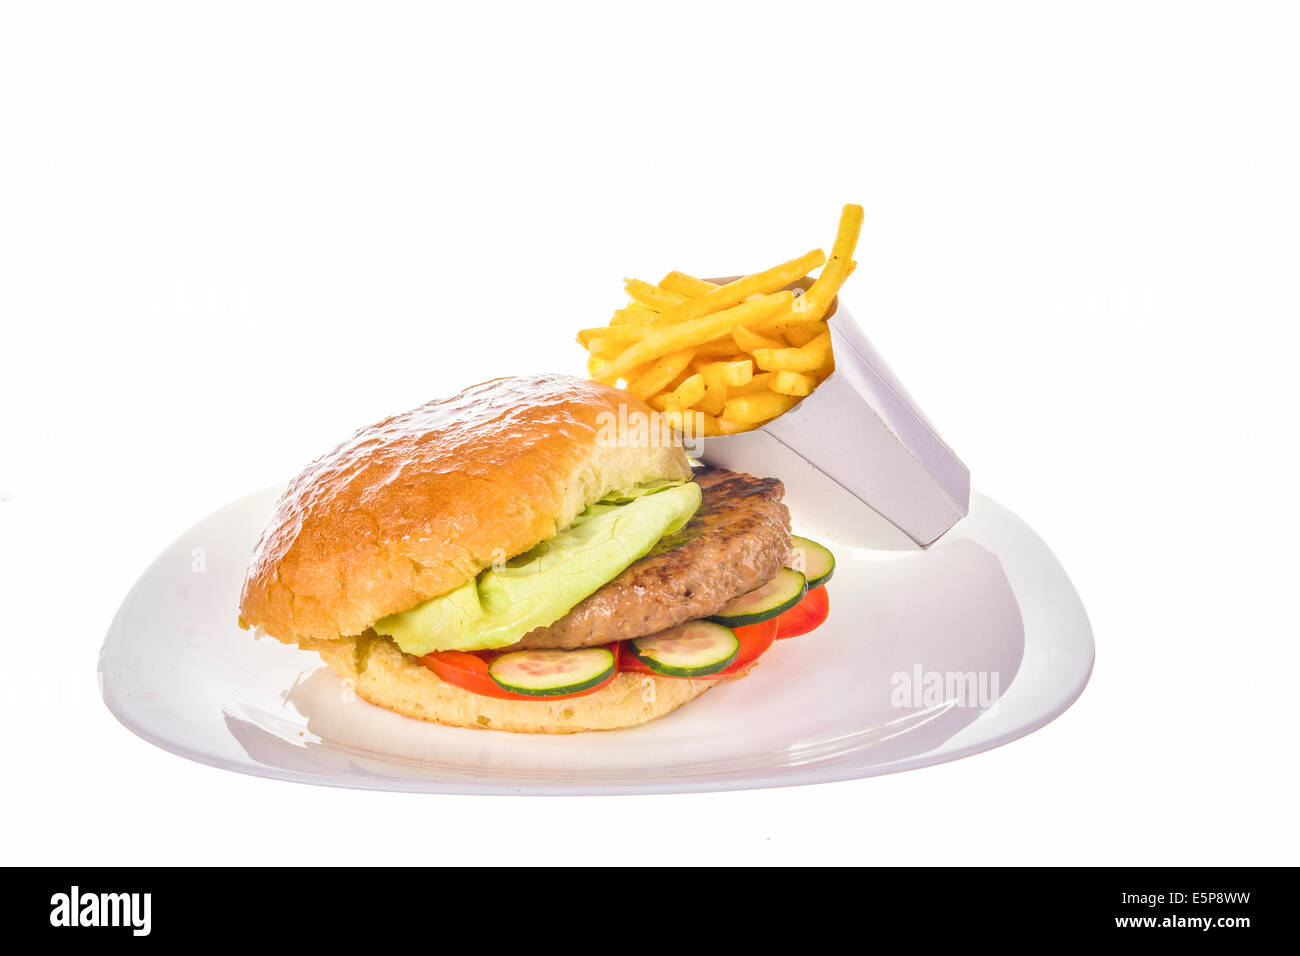 hamburger with salad and french fries on the side isolated on white plate - Stock Image